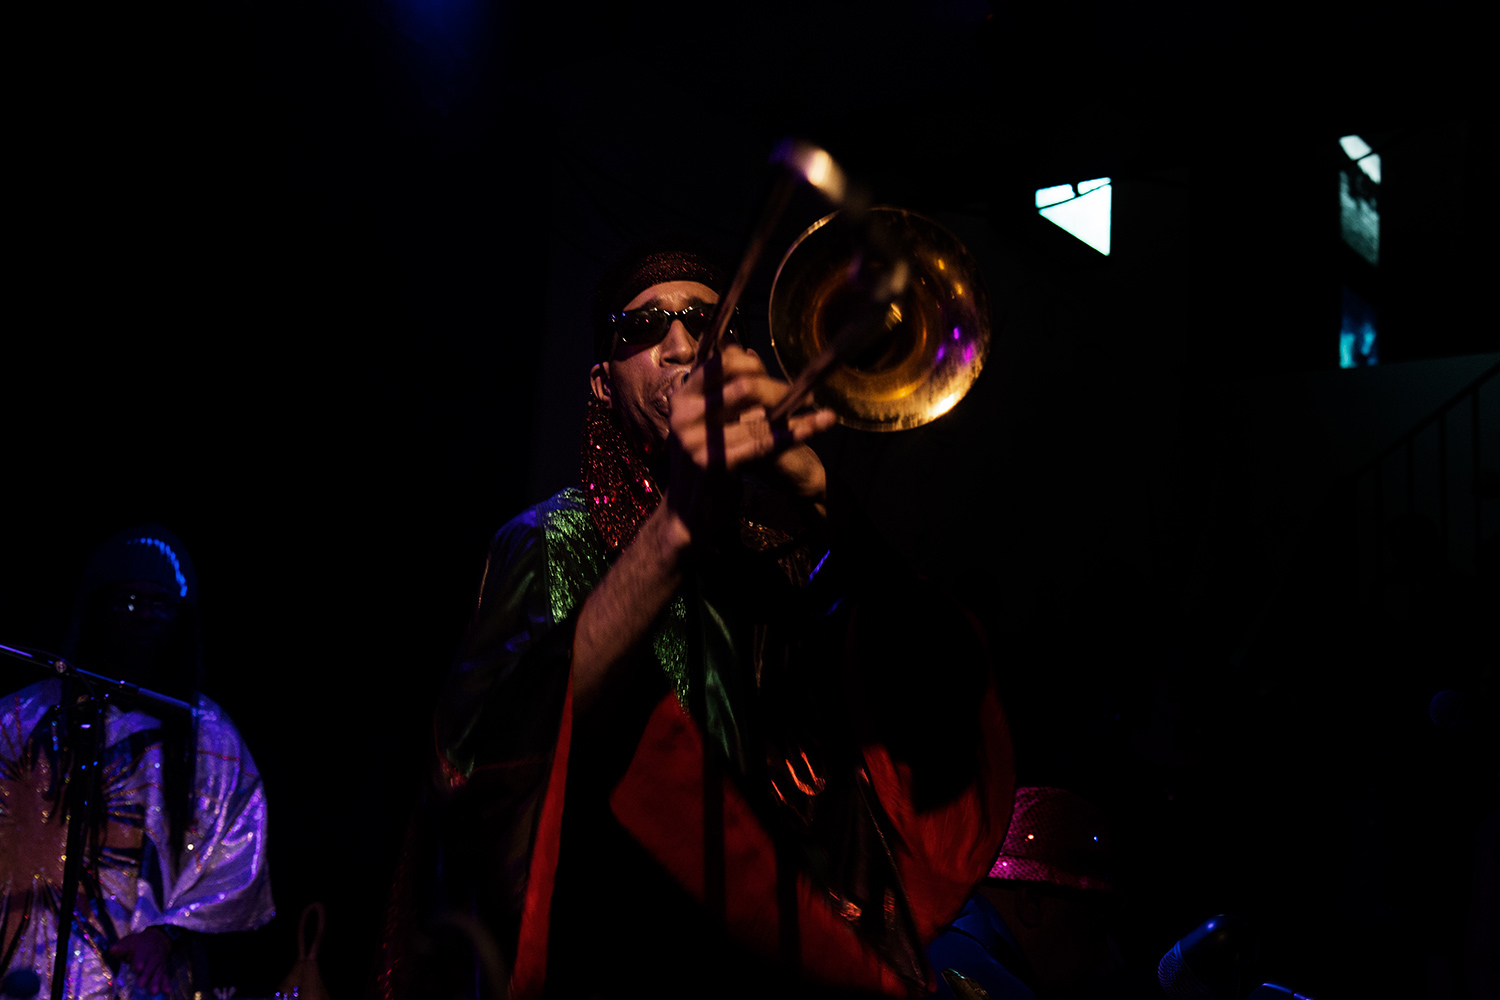 Sun Ra Arkestra directed by Marshall Allen by Laurent Orseau - Concert - Les Ateliers Claus - Brussels, Belgium #32